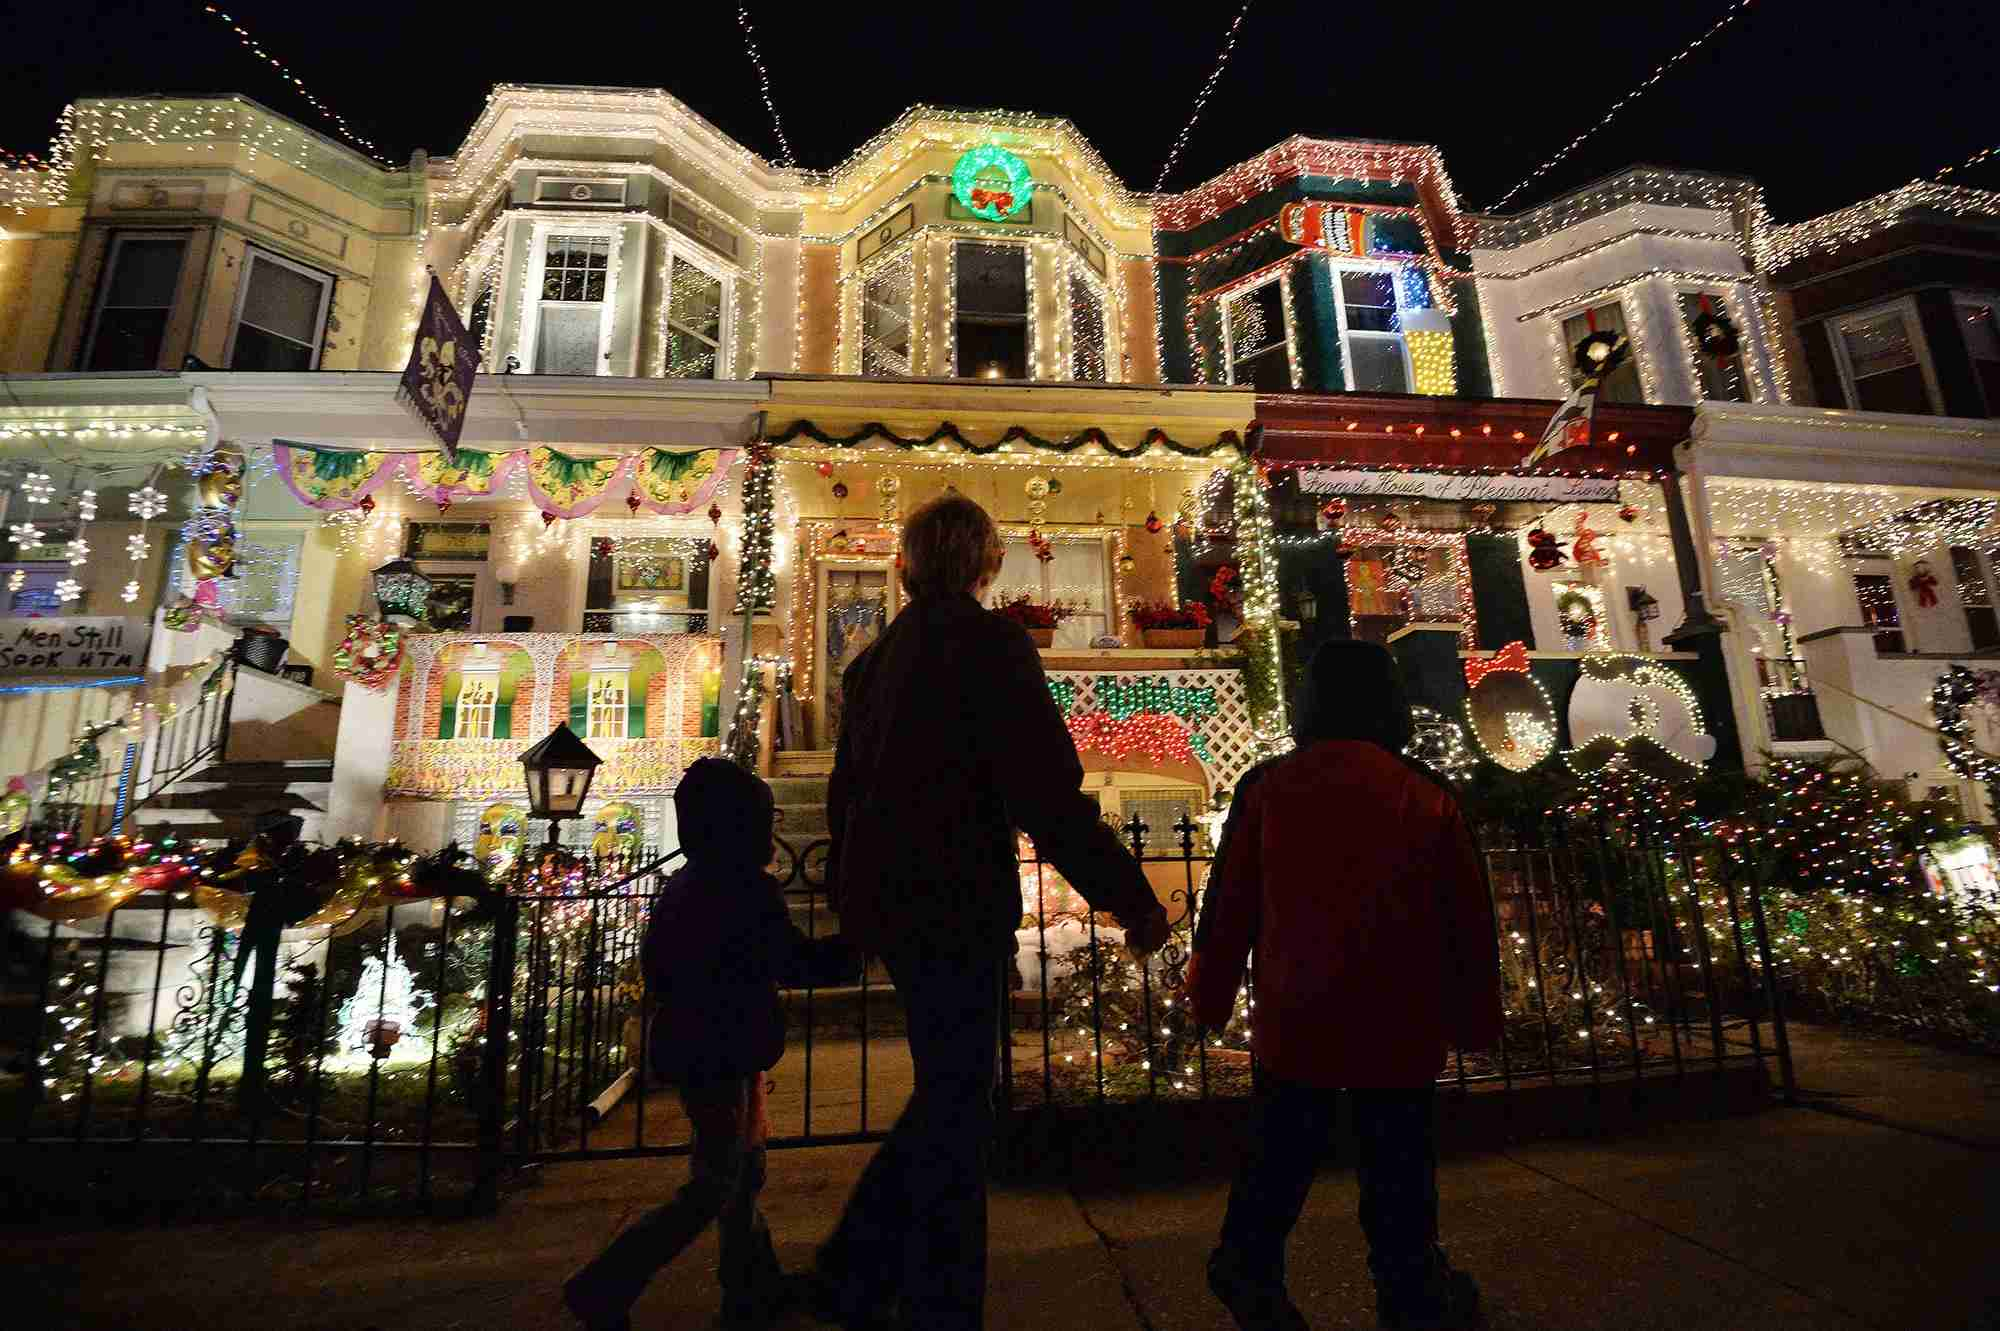 People enjoy the Christmas lights on the 700 block of 34th Street in the Hampden community of Baltimore (Photo by MLADEN ANTONOV/AFP via Getty Images)